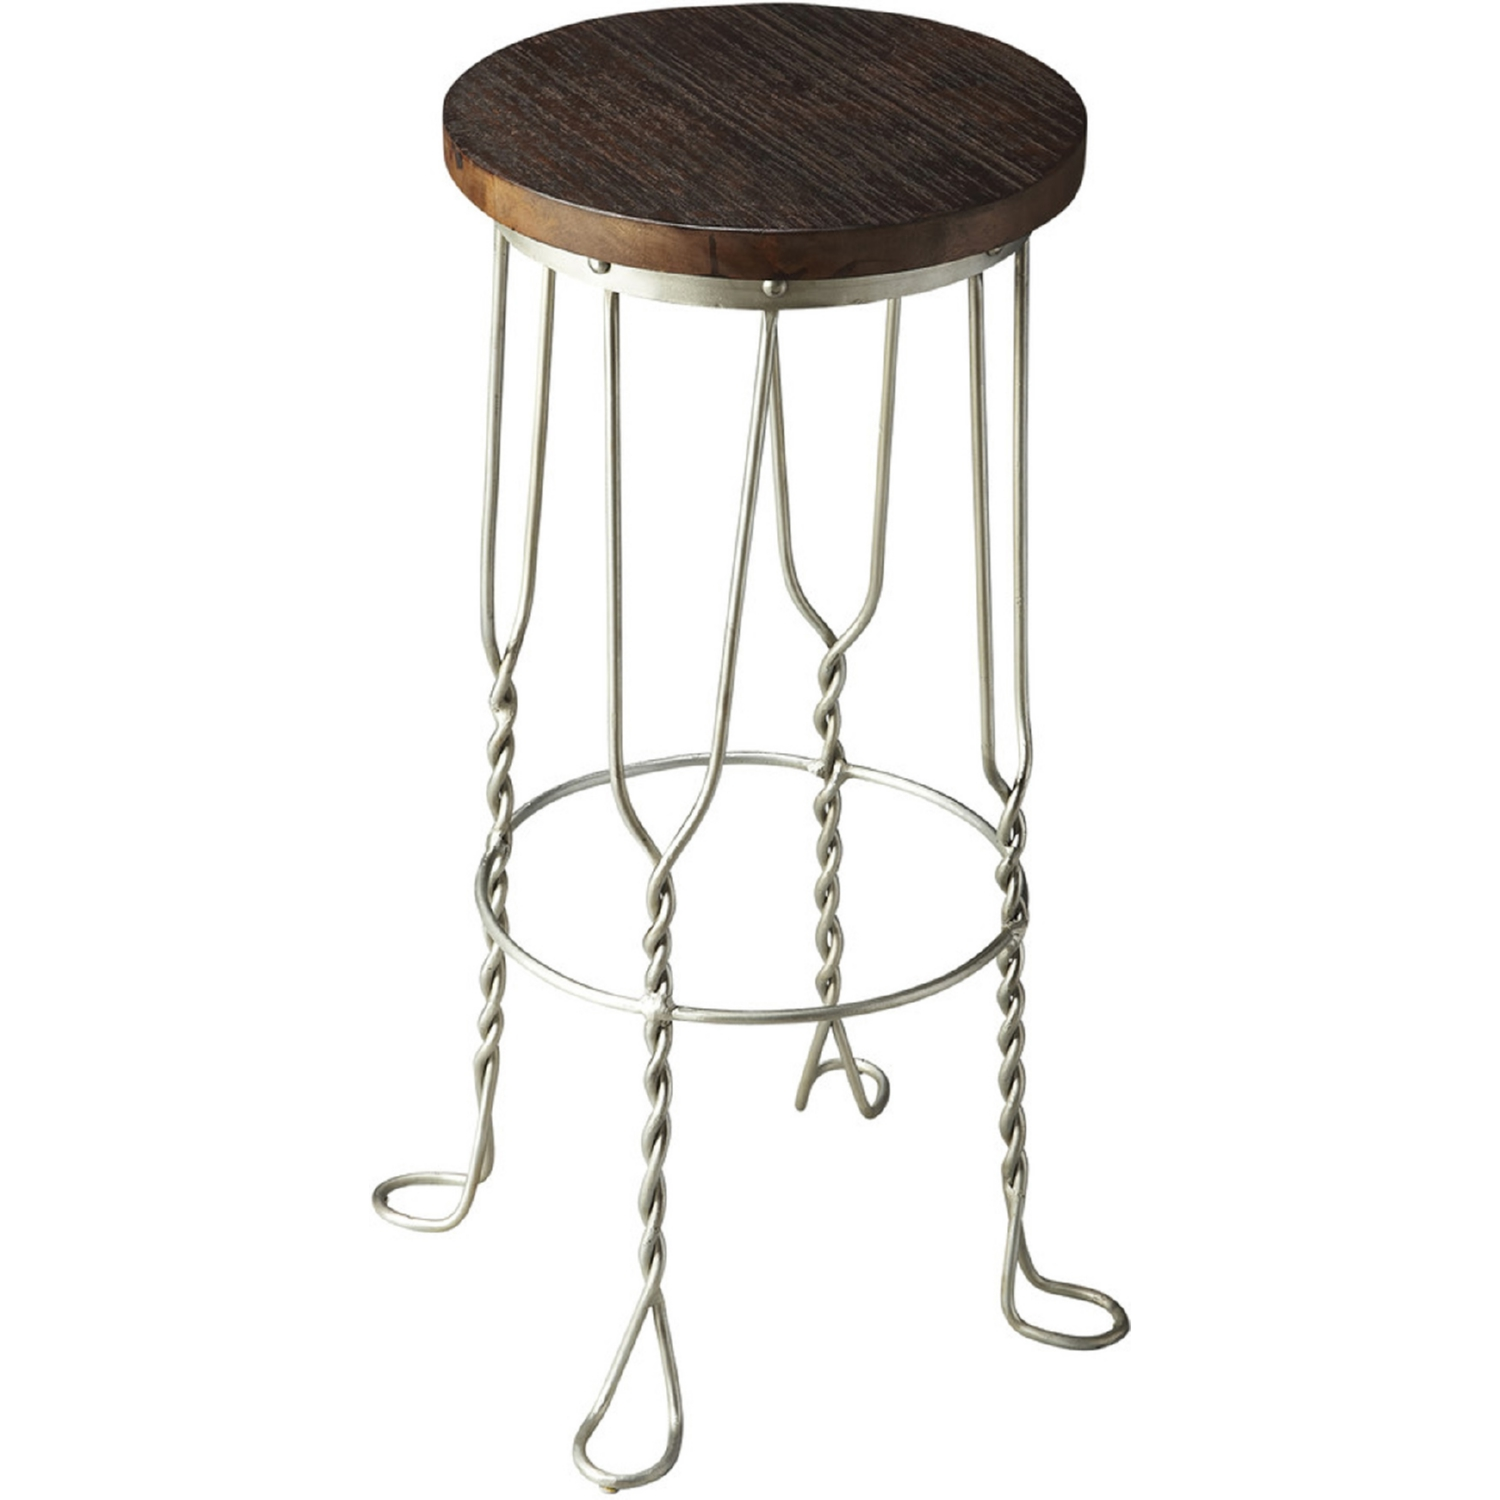 Industrial Chic Bar Stool In Multicolor Iron Recycled Wood By Butler Specialty